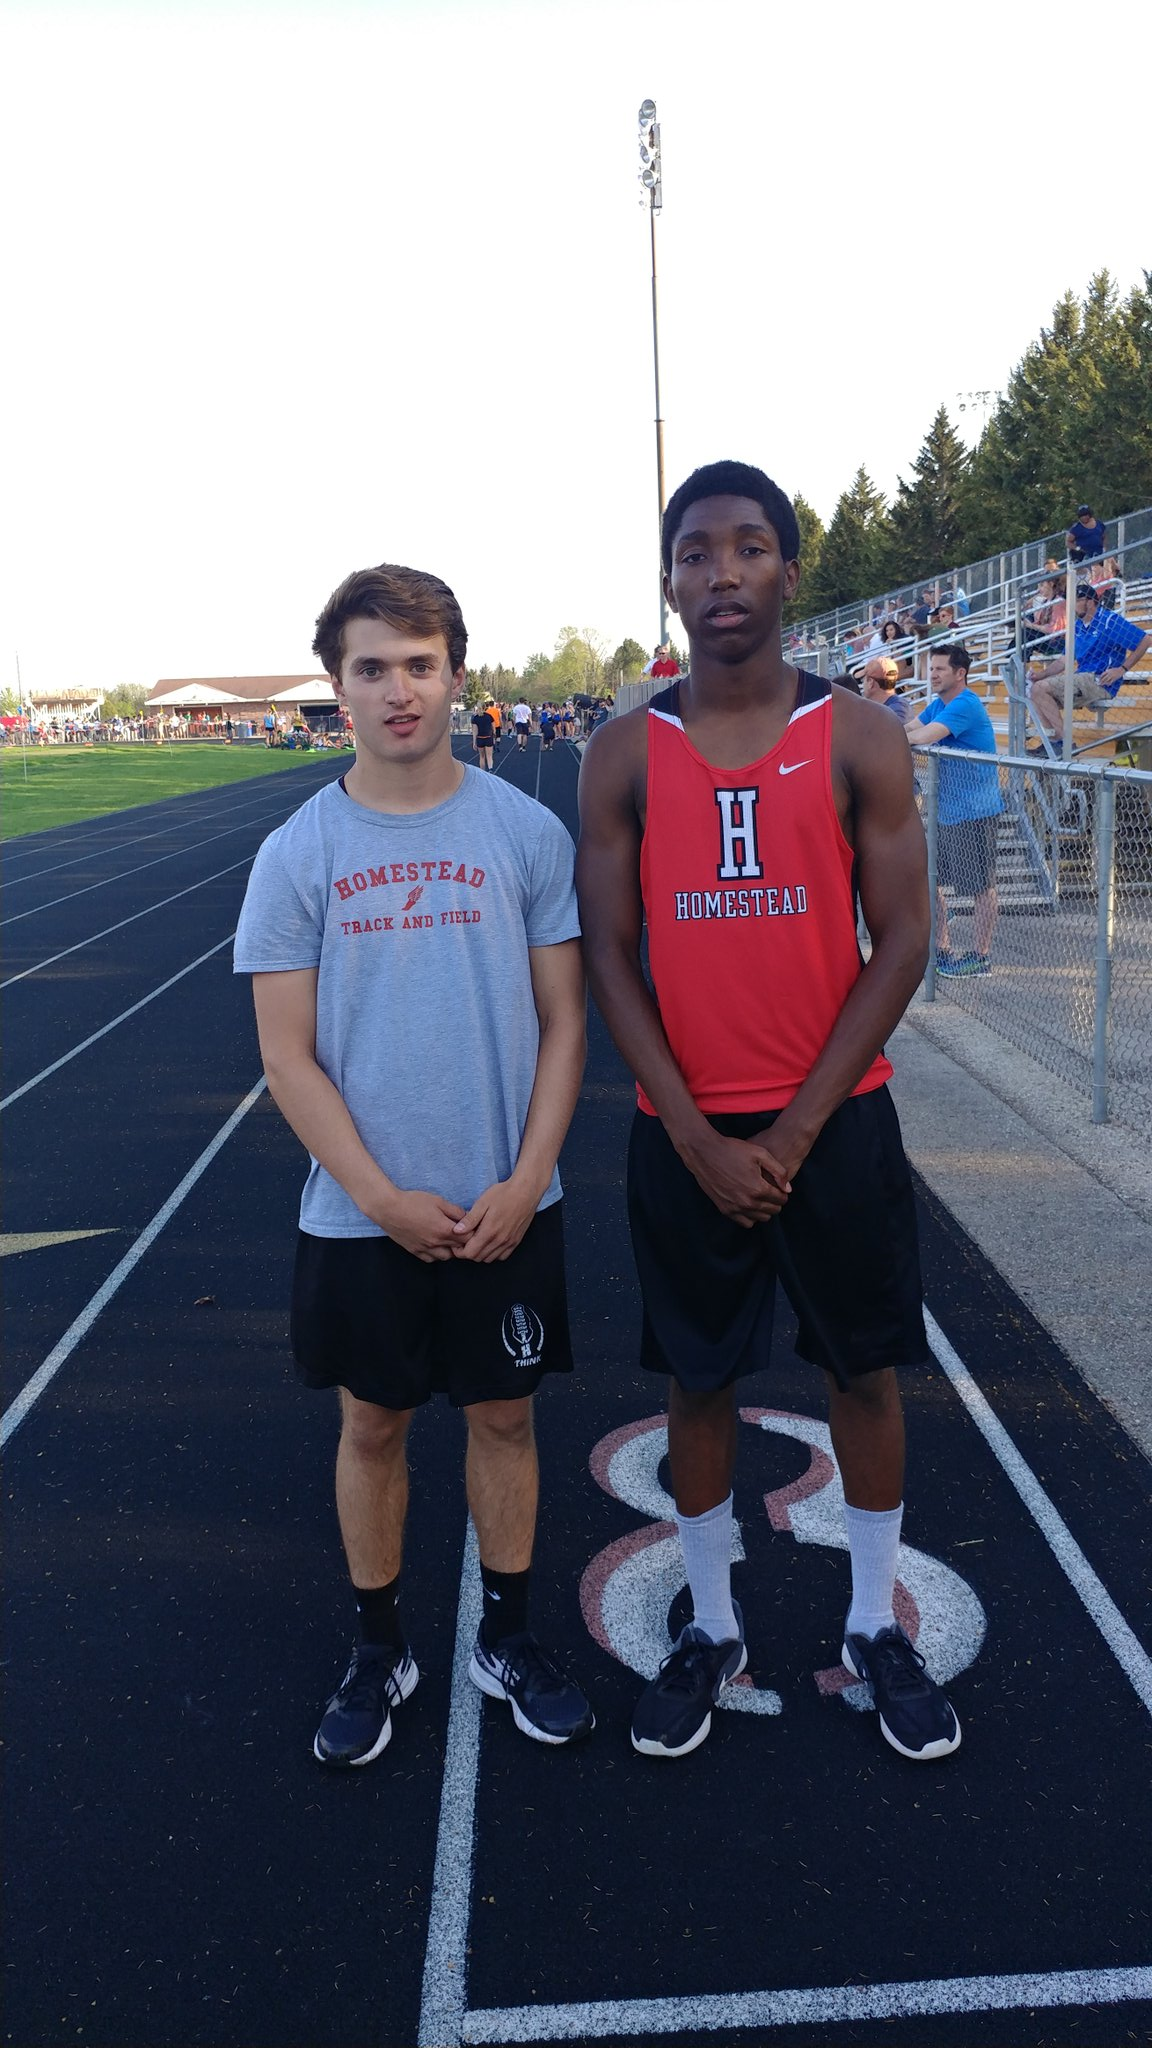 100 Meters Final. Junior Corey DeToro 11.14. Sophomore Willie Garrison 10.91. HHS #2 all-time https://t.co/1jnhIsJf20